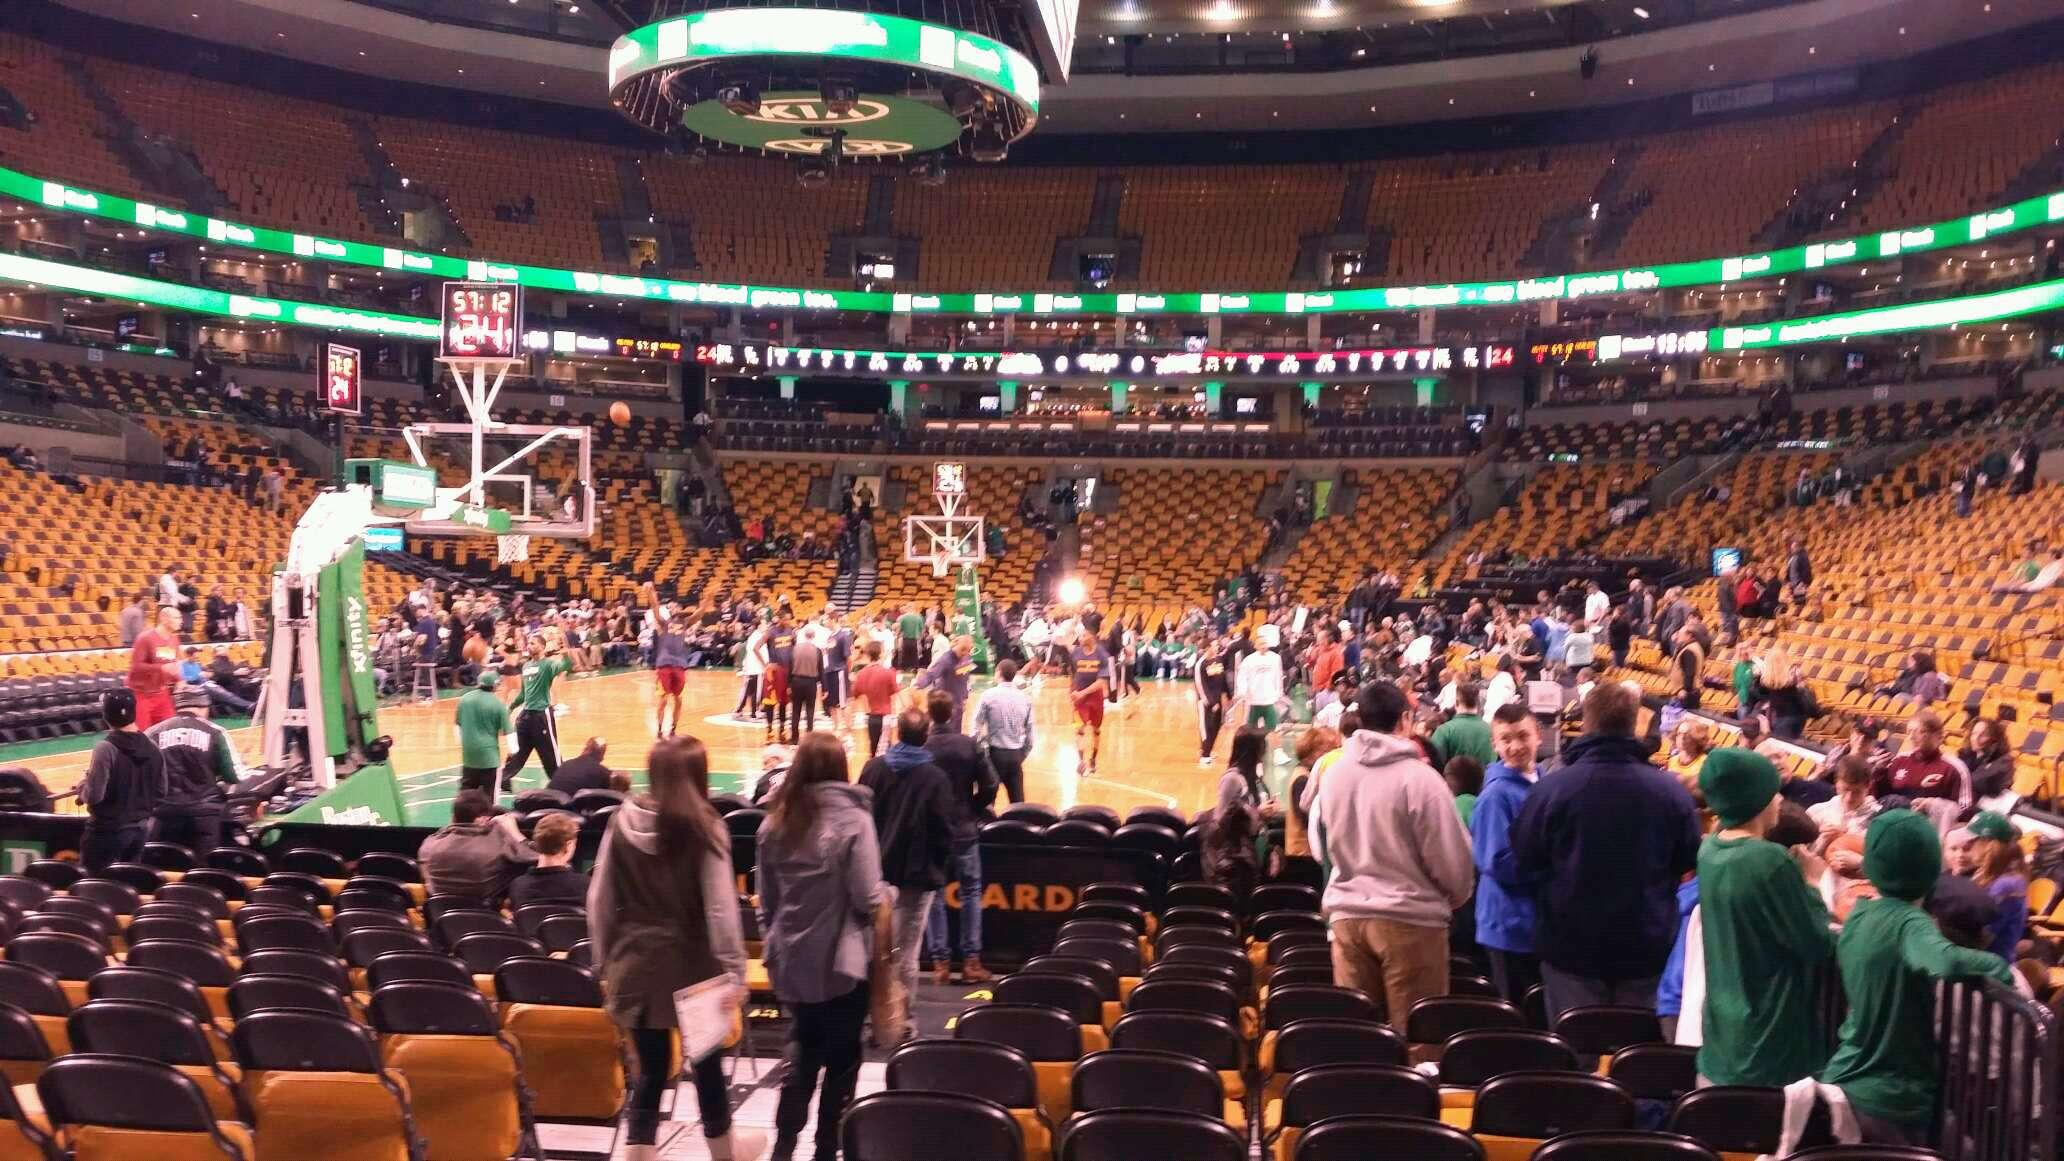 td garden section loge 5 row 2 seat 9 boston celtics vs cleveland cavaliers